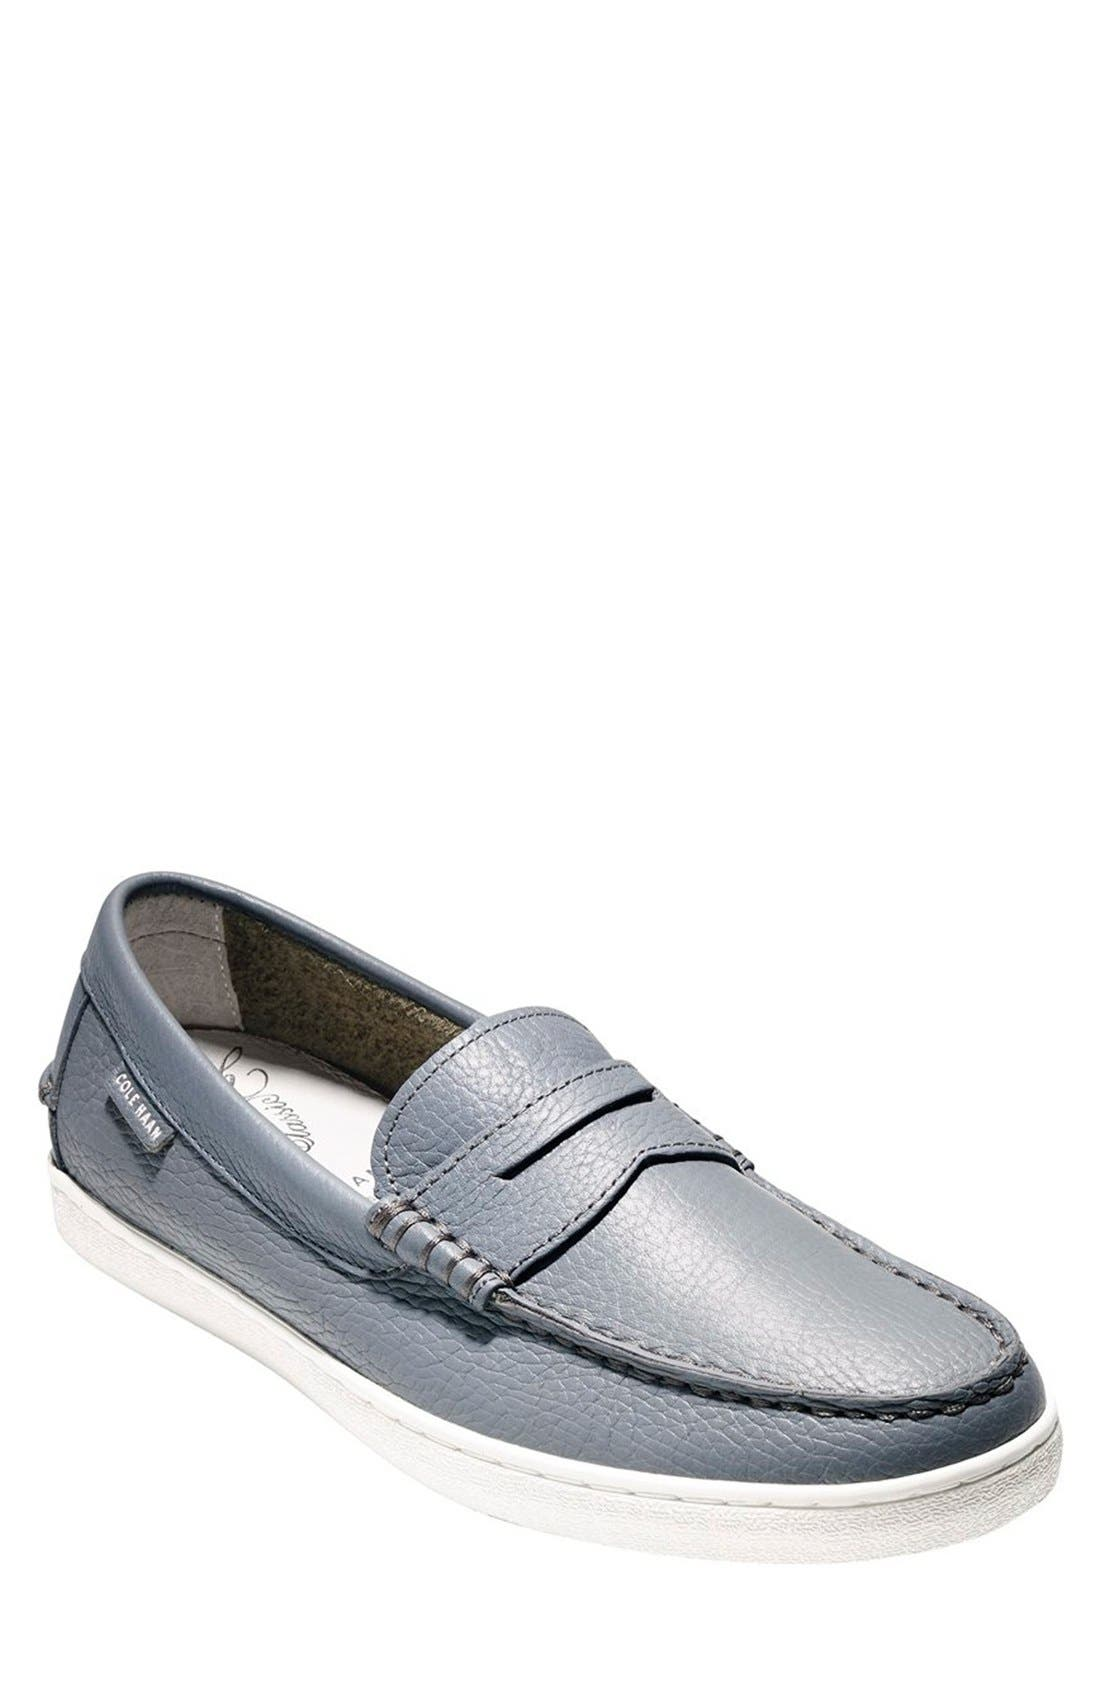 'Pinch' Penny Loafer,                         Main,                         color, GREY LEATHER/ WHITE